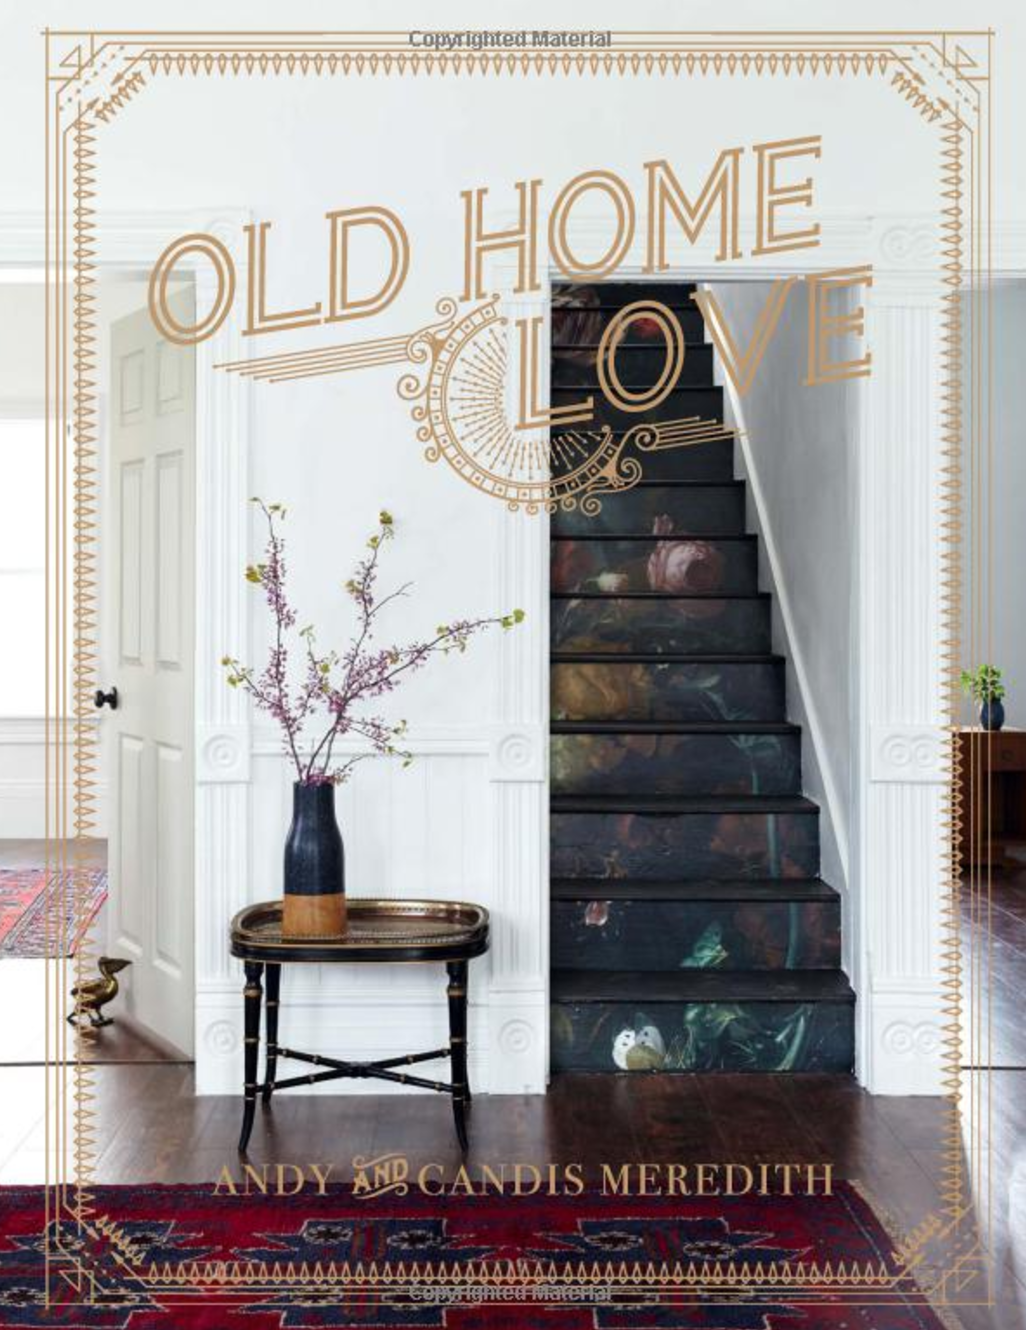 Old Home Love by Andy and Candis Meredith